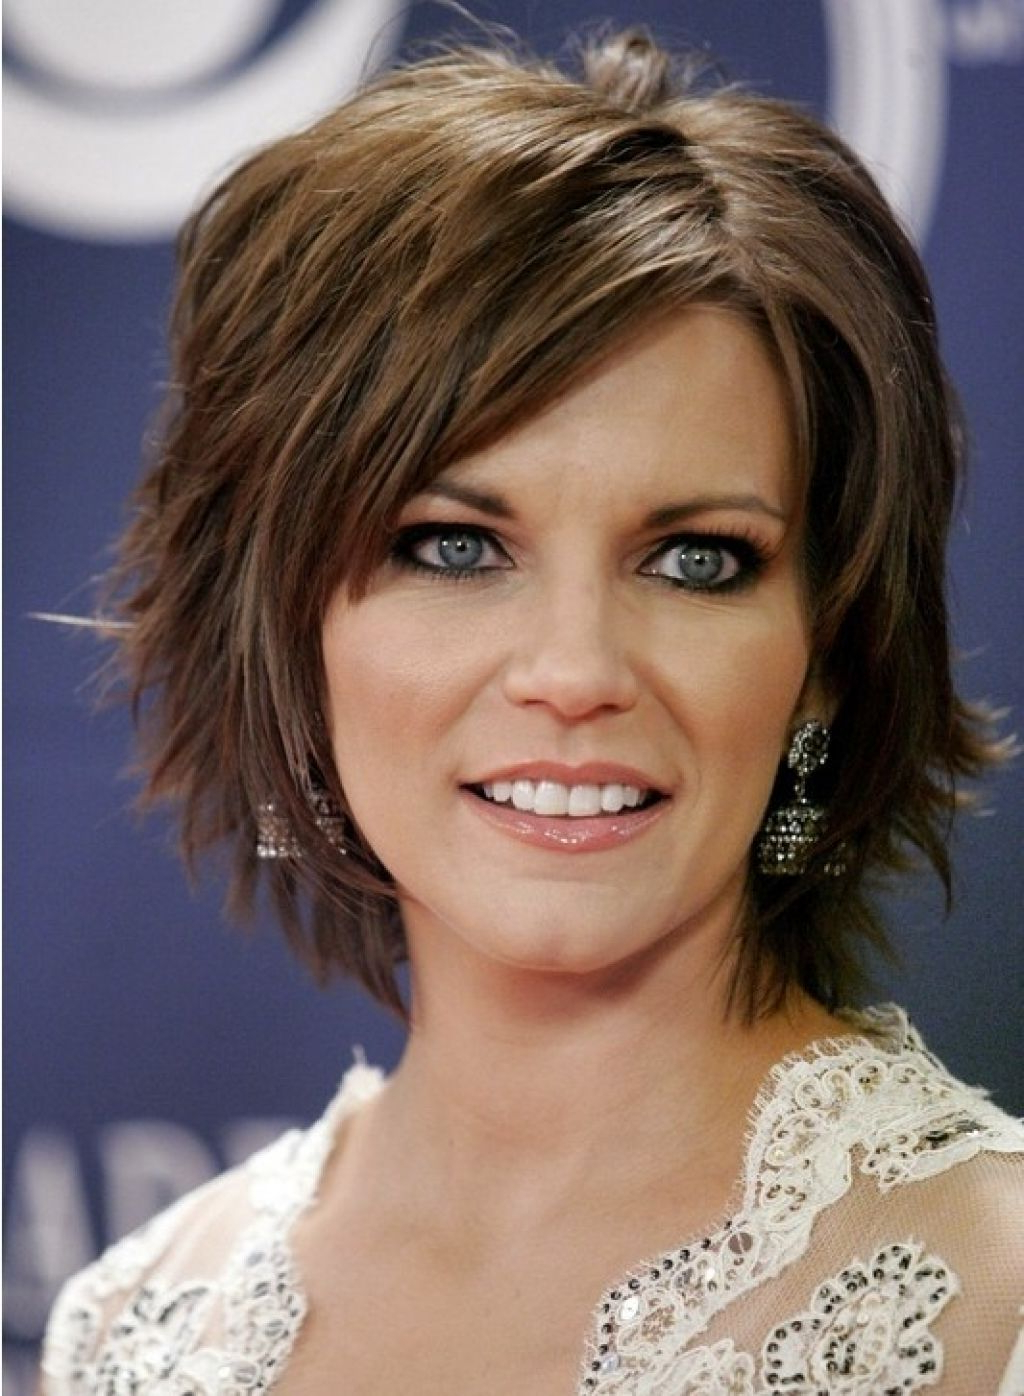 Short Layered Hairstyles With Bangs | The Best Hairstyles Regarding Long Hairstyles Short Layers (View 15 of 25)